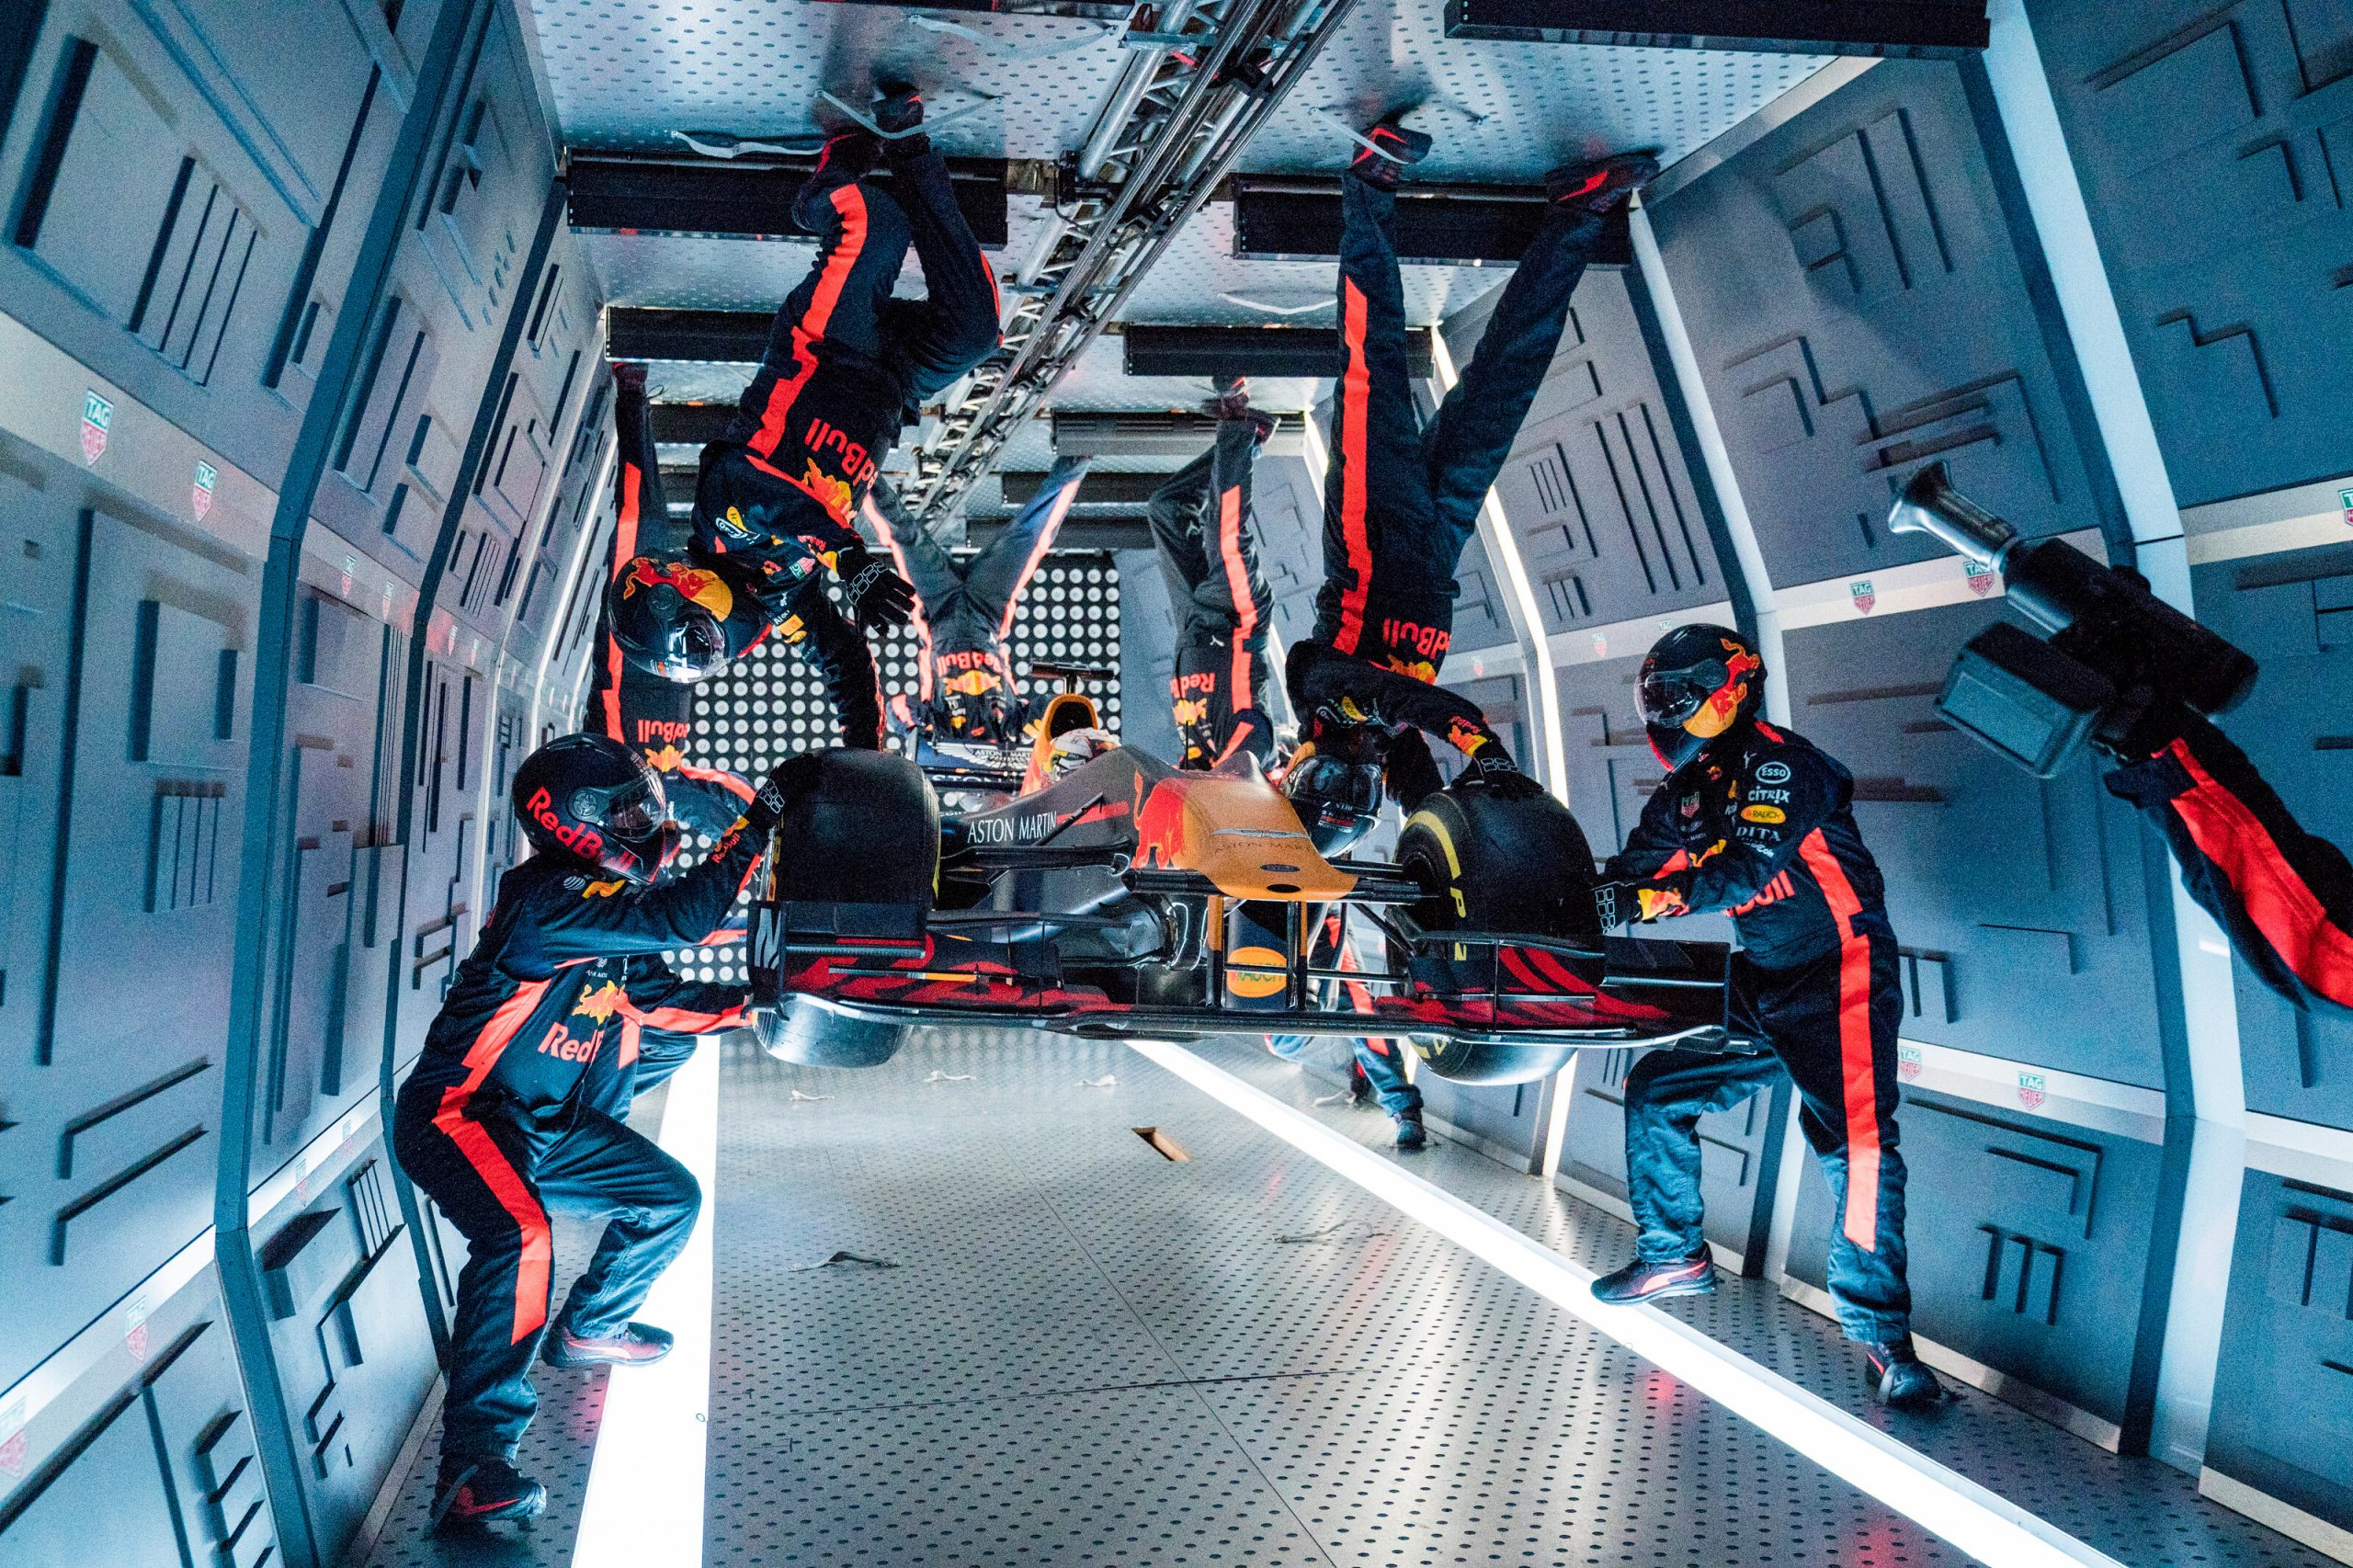 Red Bull zero gravity cosmonaut training zero gravity pitstop